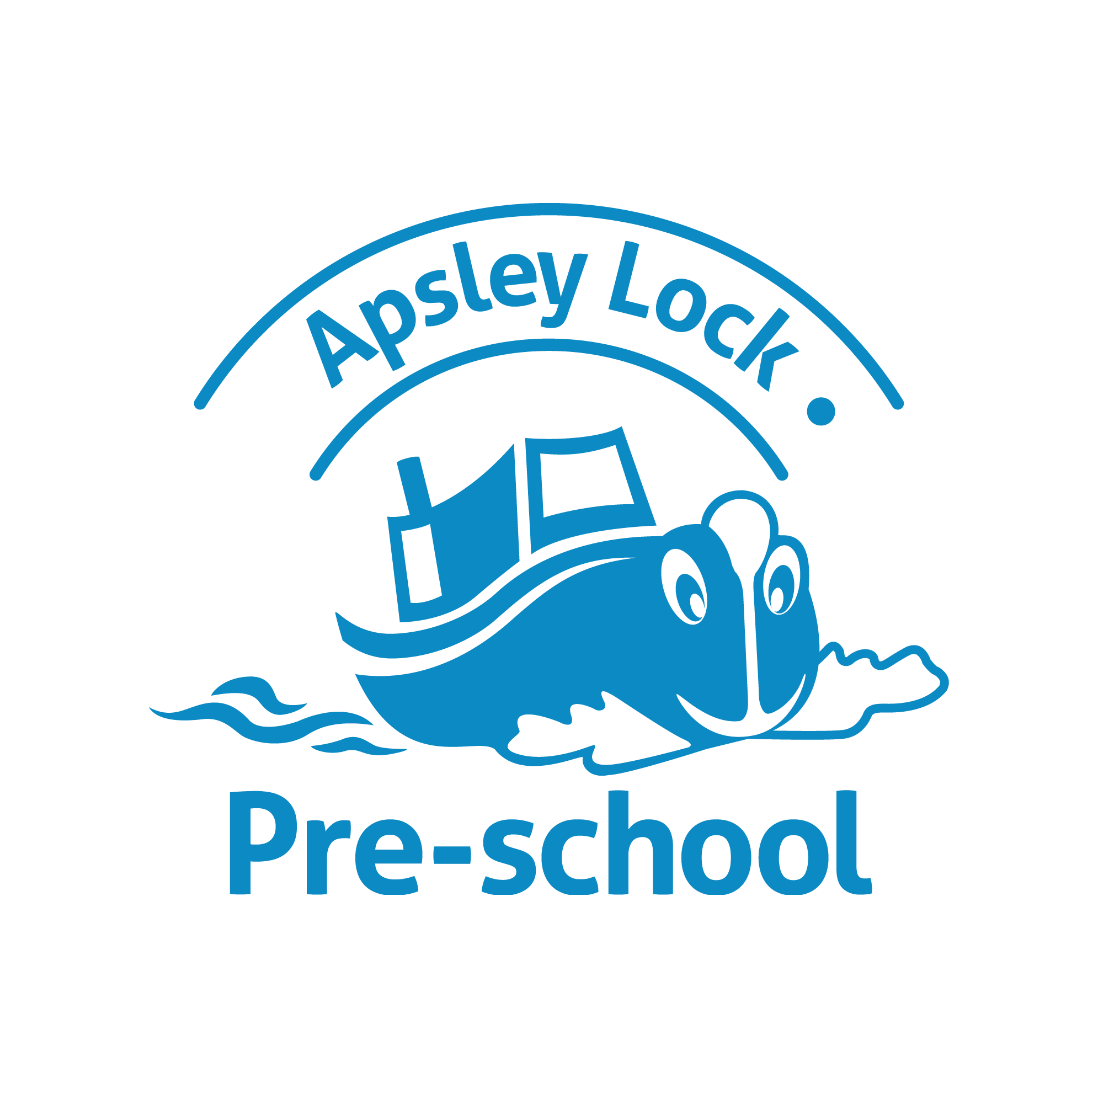 Apsley Lock Preschool